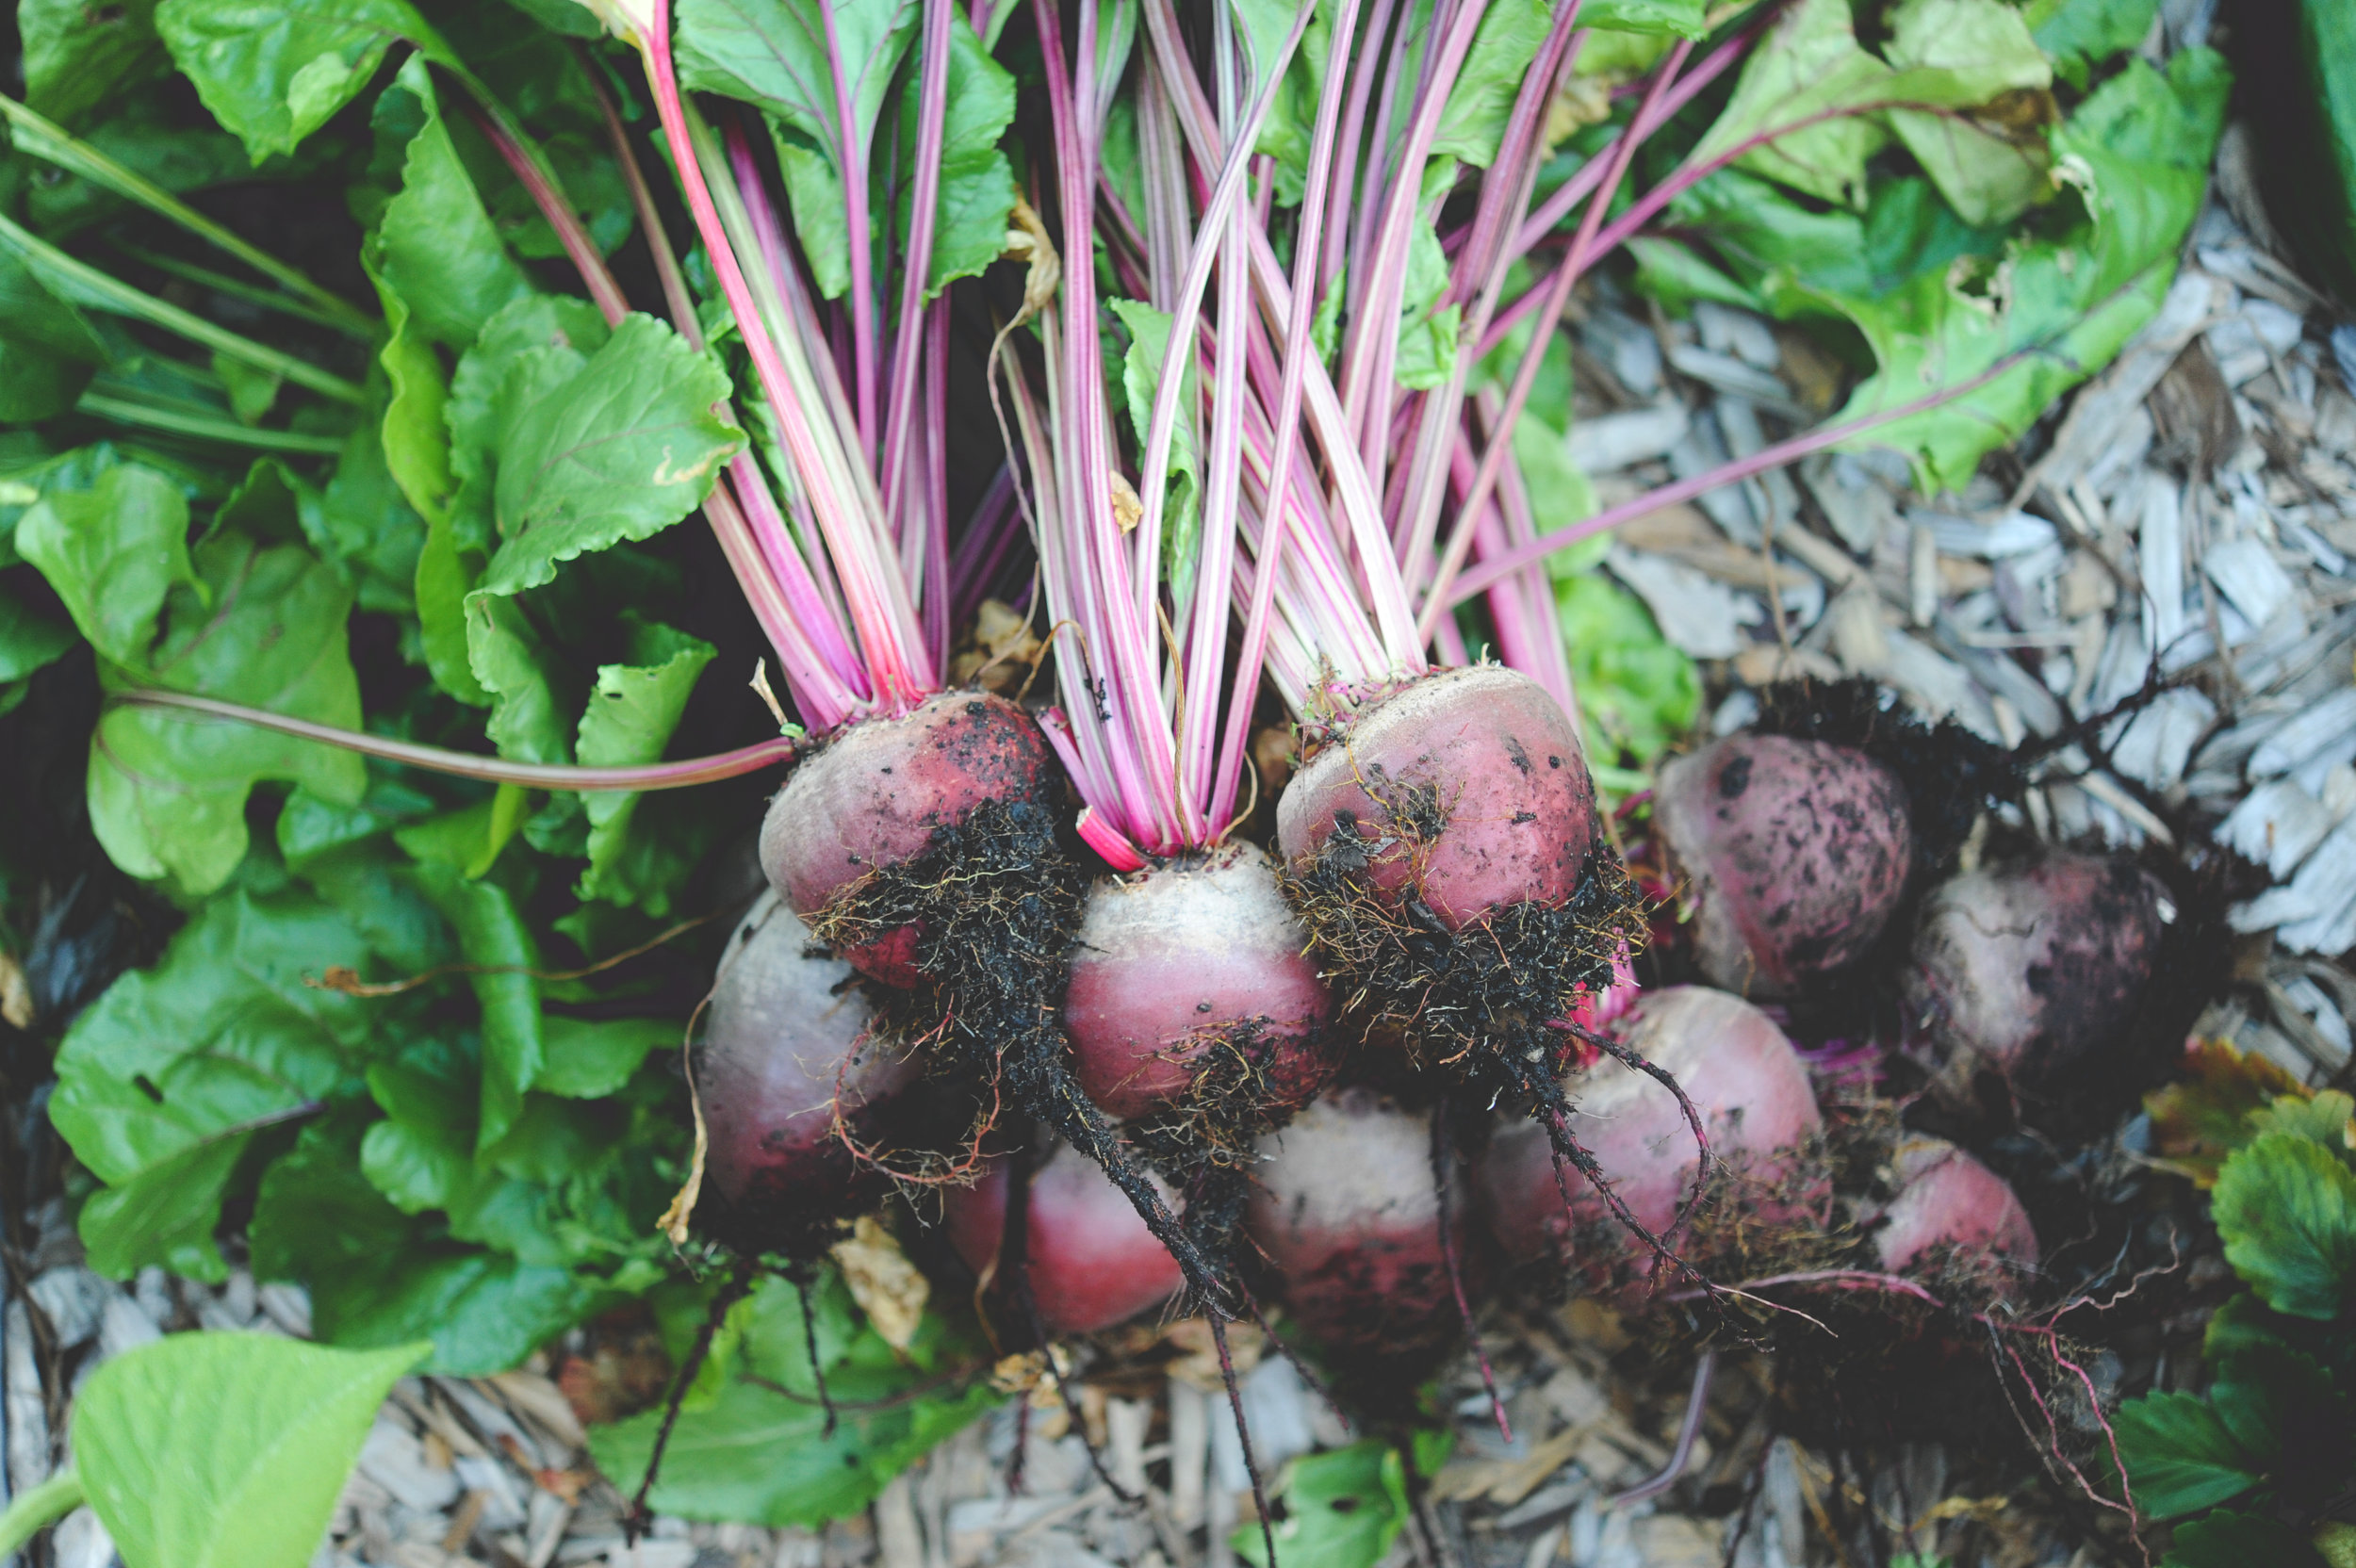 Harvested Early Wonder Beets